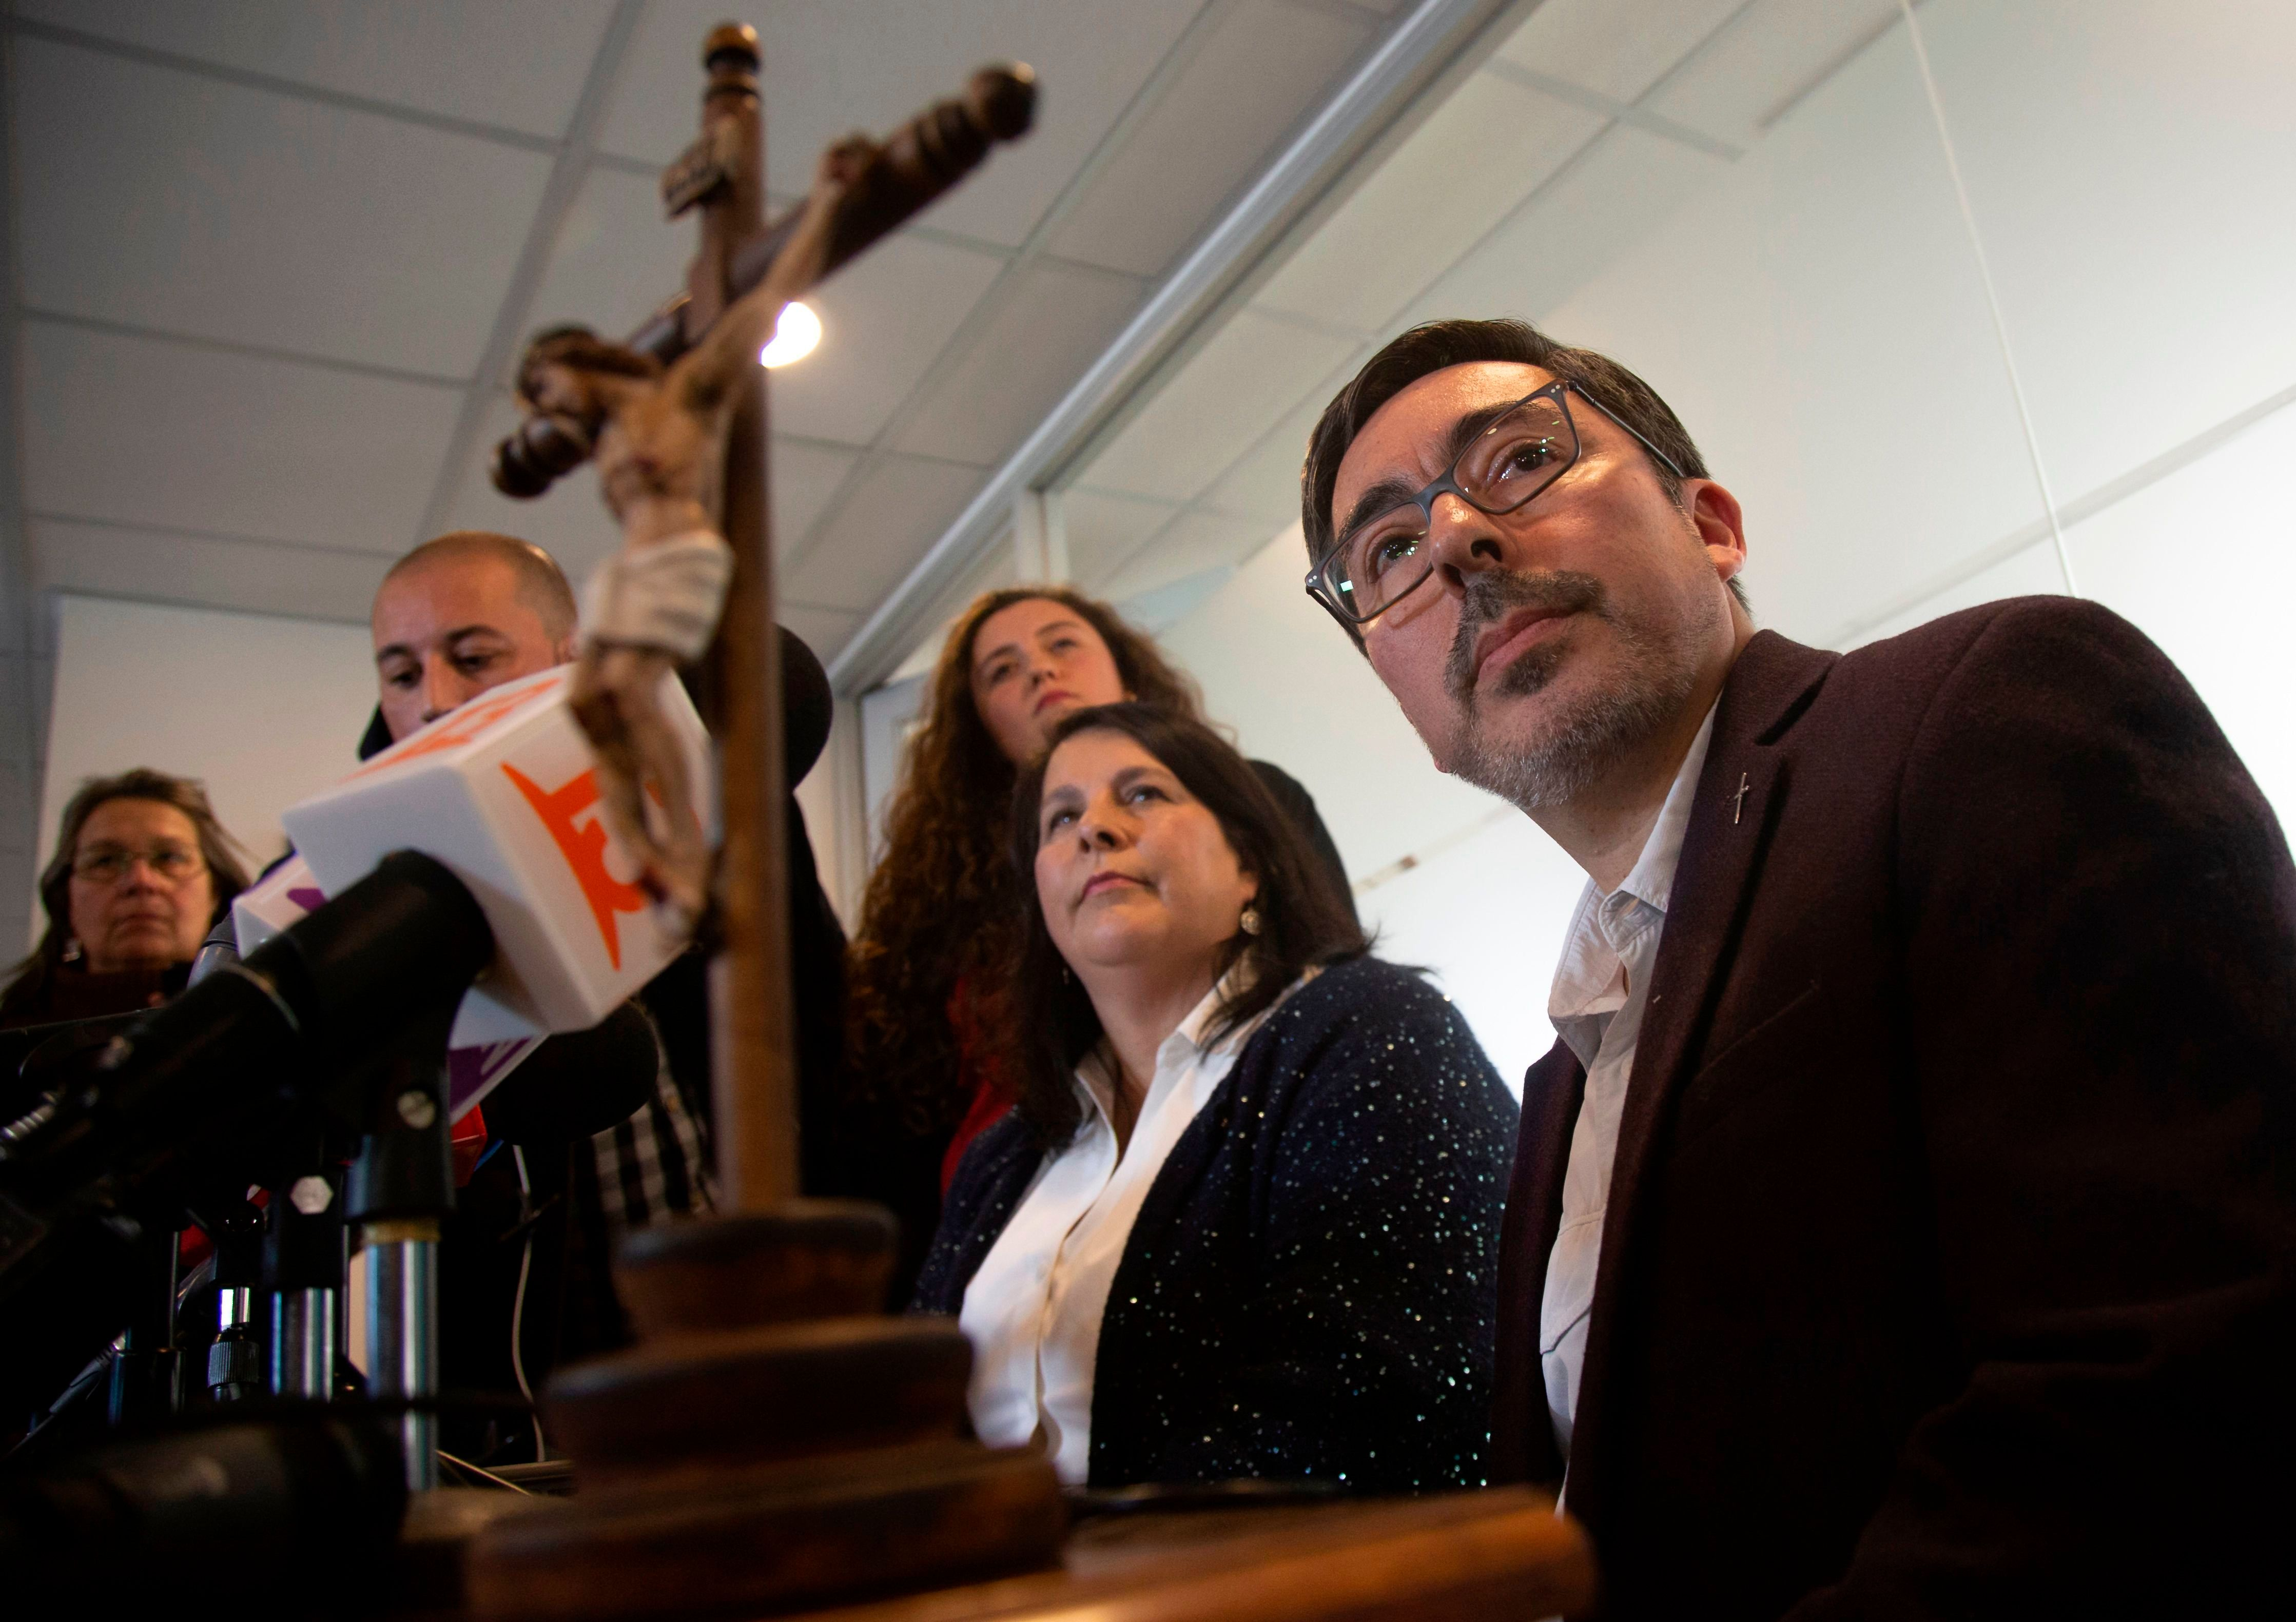 The spokesman of the Episcopal Conference of Chile, deacon Jaime Coiro (R), speaks during a press conference alongside Ana Maria Celis, a member of the National Council for the Prevention of Abuses and Canon Law expert, in Santiago, on July 23, 2018. - Chile is now investigating 158 members of the country's embattled Catholic Church -- both clergymen and lay people -- for perpetrating or concealing the sexual abuse of children and adults, prosecutors said Monday. The cases relate to incidents dating back as far as 1960 and involving 266 victims, including 178 children and adolescents, according to public prosecutor Luis Torres. (Photo by CLAUDIO REYES / AFP)        (Photo credit should read CLAUDIO REYES/AFP/Getty Images)